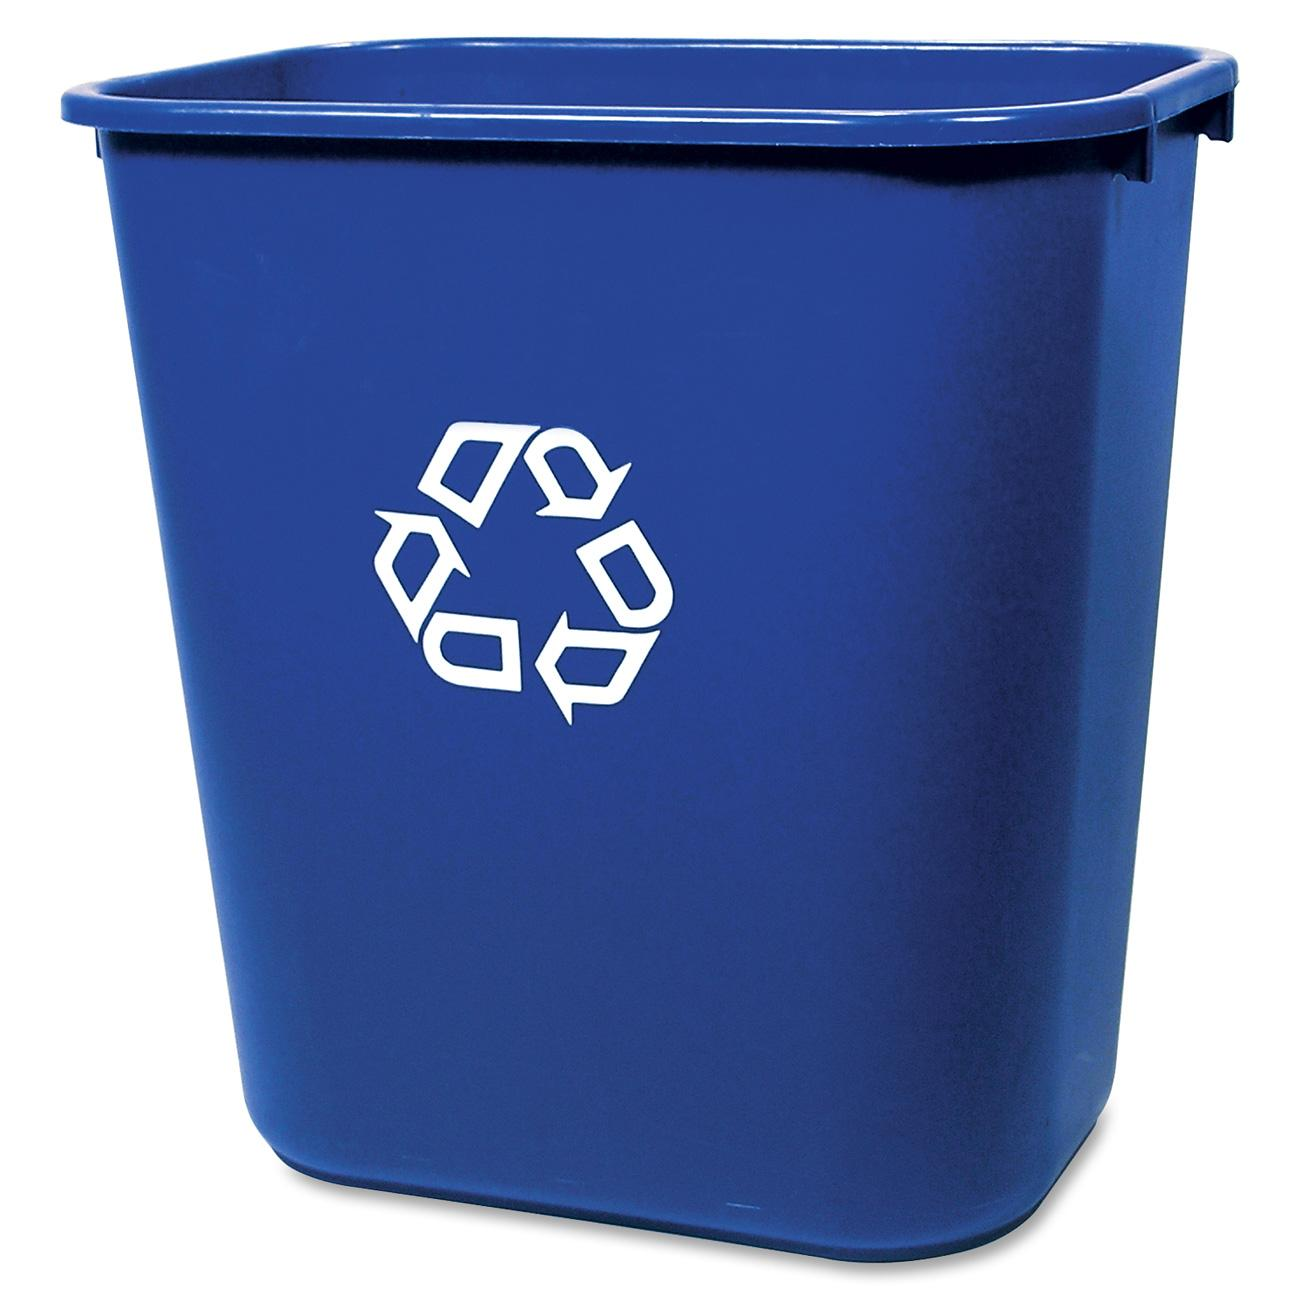 Rubbermaid Deskside Recycling Container, Blue